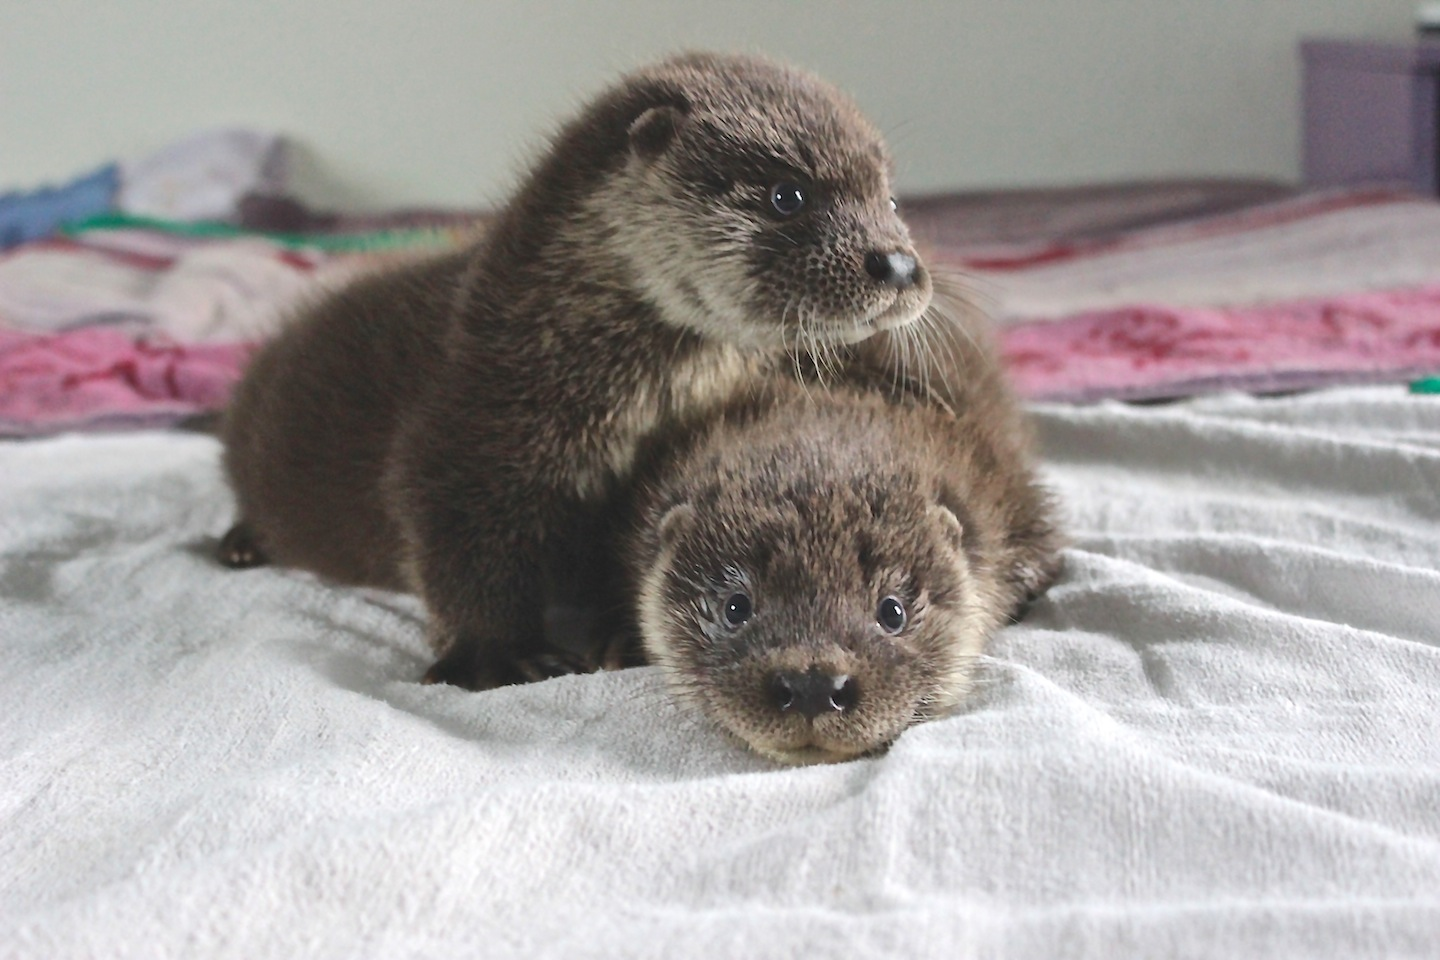 Hillswick Wildlife Sanctuary will put the money raised towards a new outdoor otter pen for Joey and Thea, their current residents.